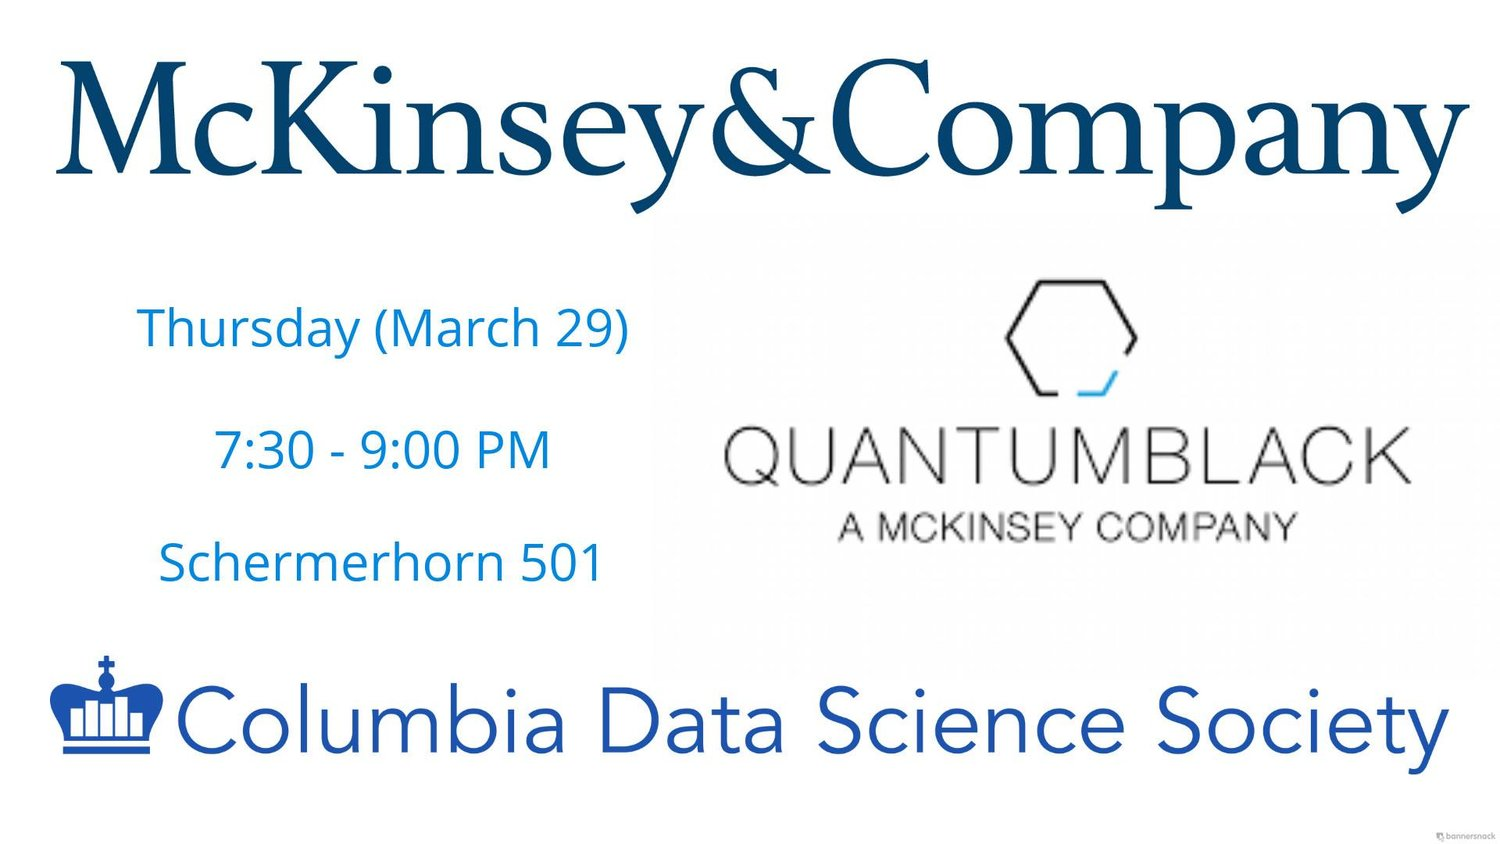 Columbia Data Science Society